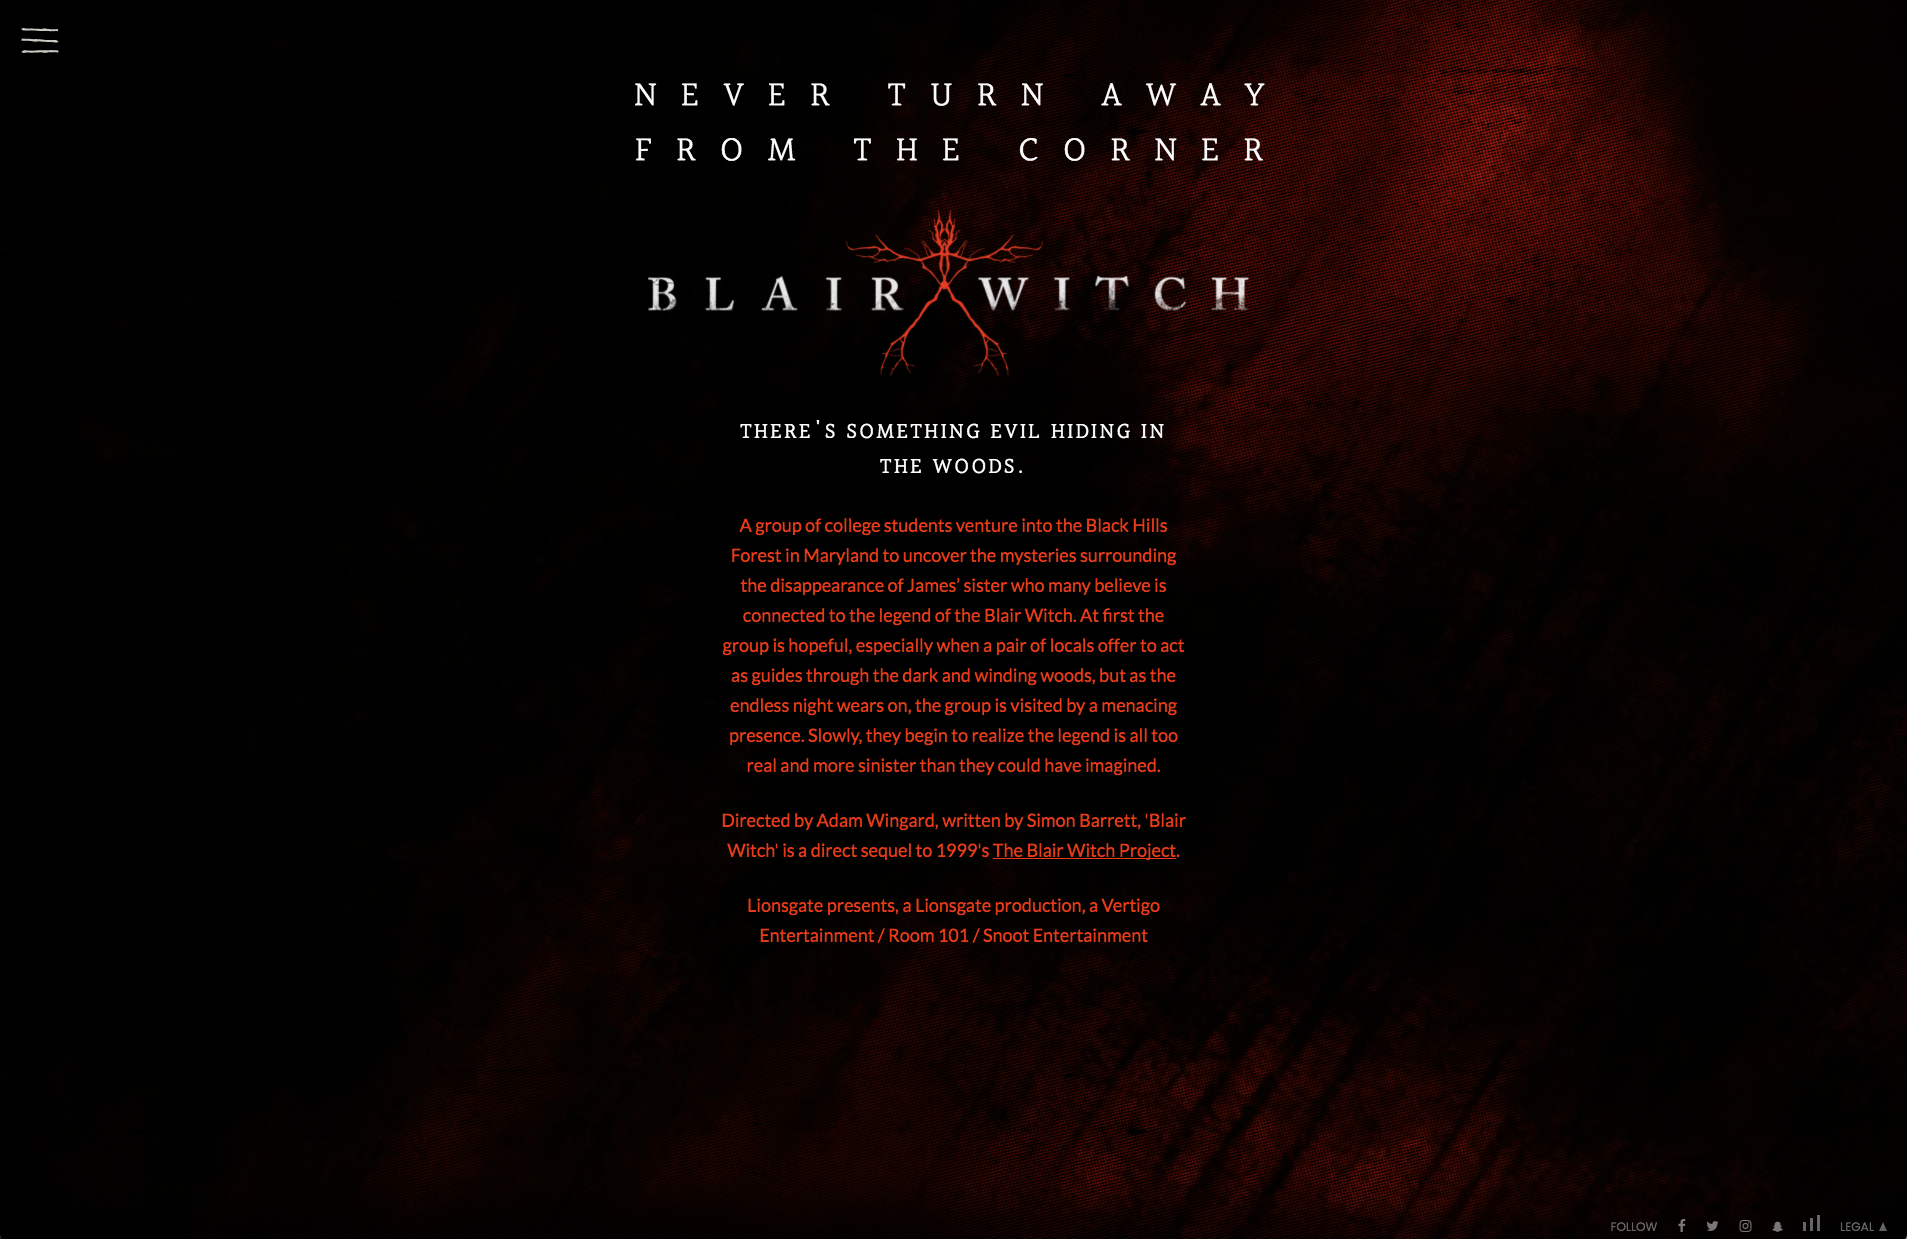 story of blair witch project landing page